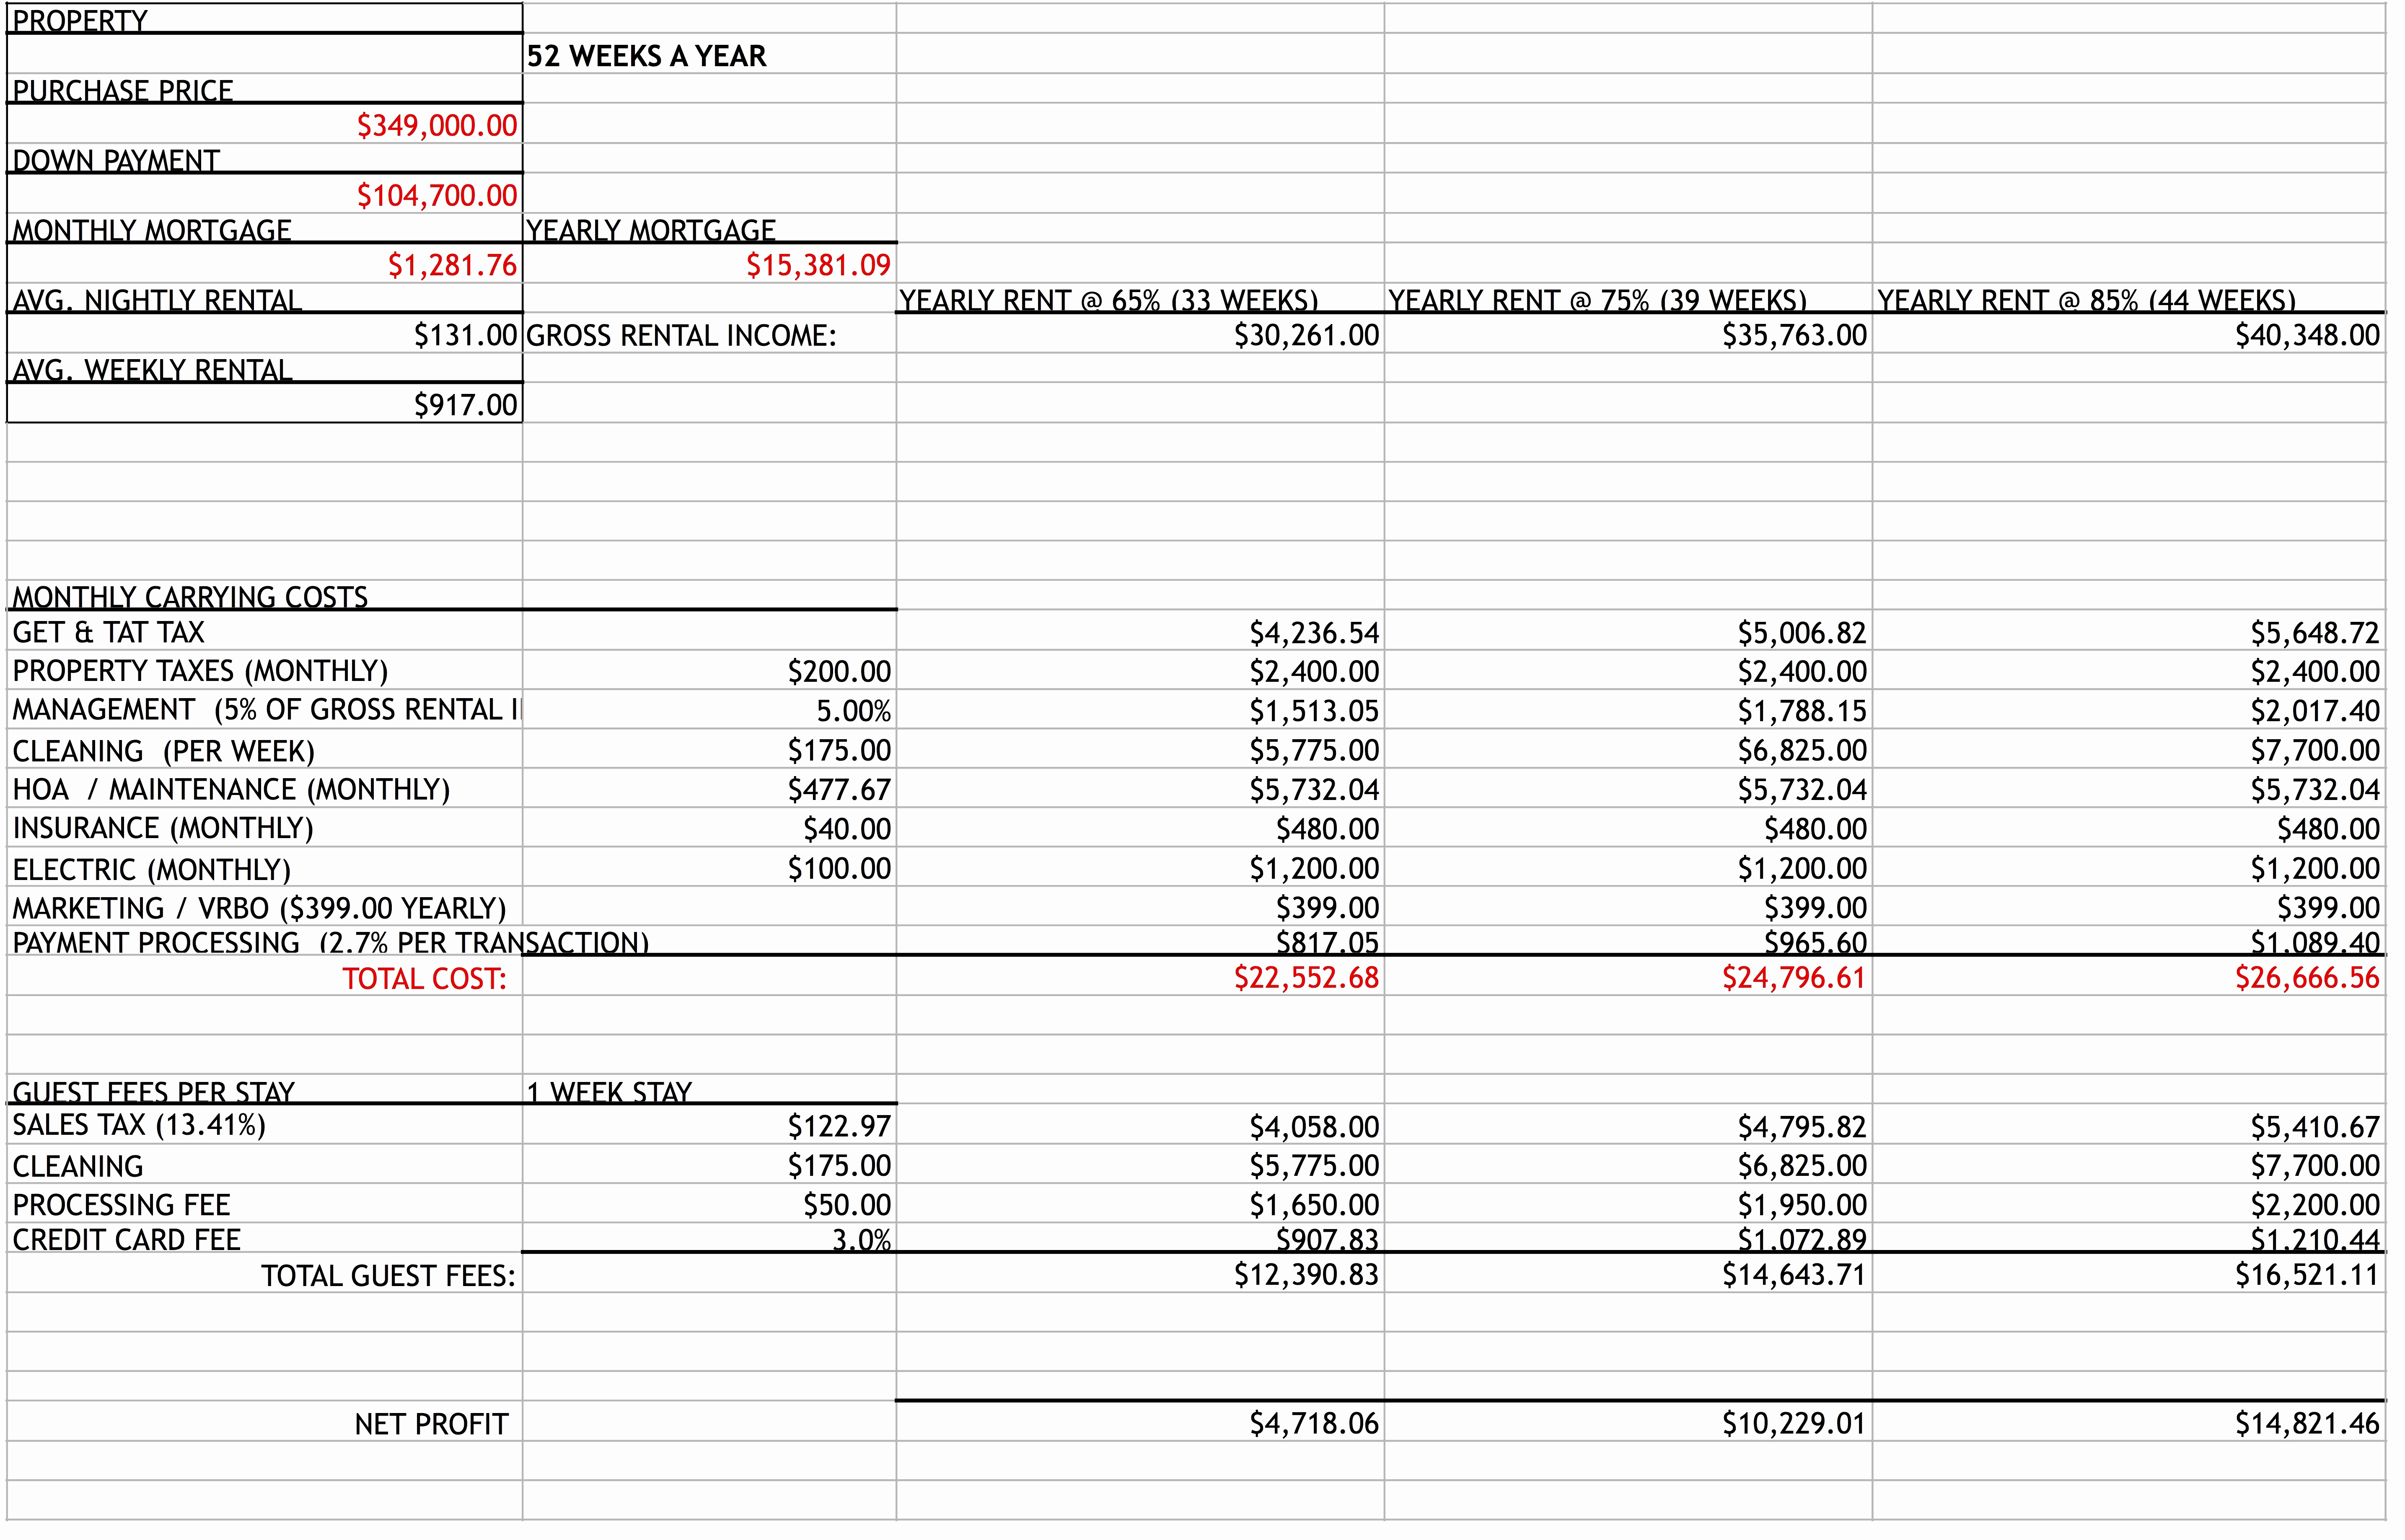 Investment Property Expenses Spreadsheet Throughout Rental Property Spreadsheet Template Excel Grdc Expenses Accounting